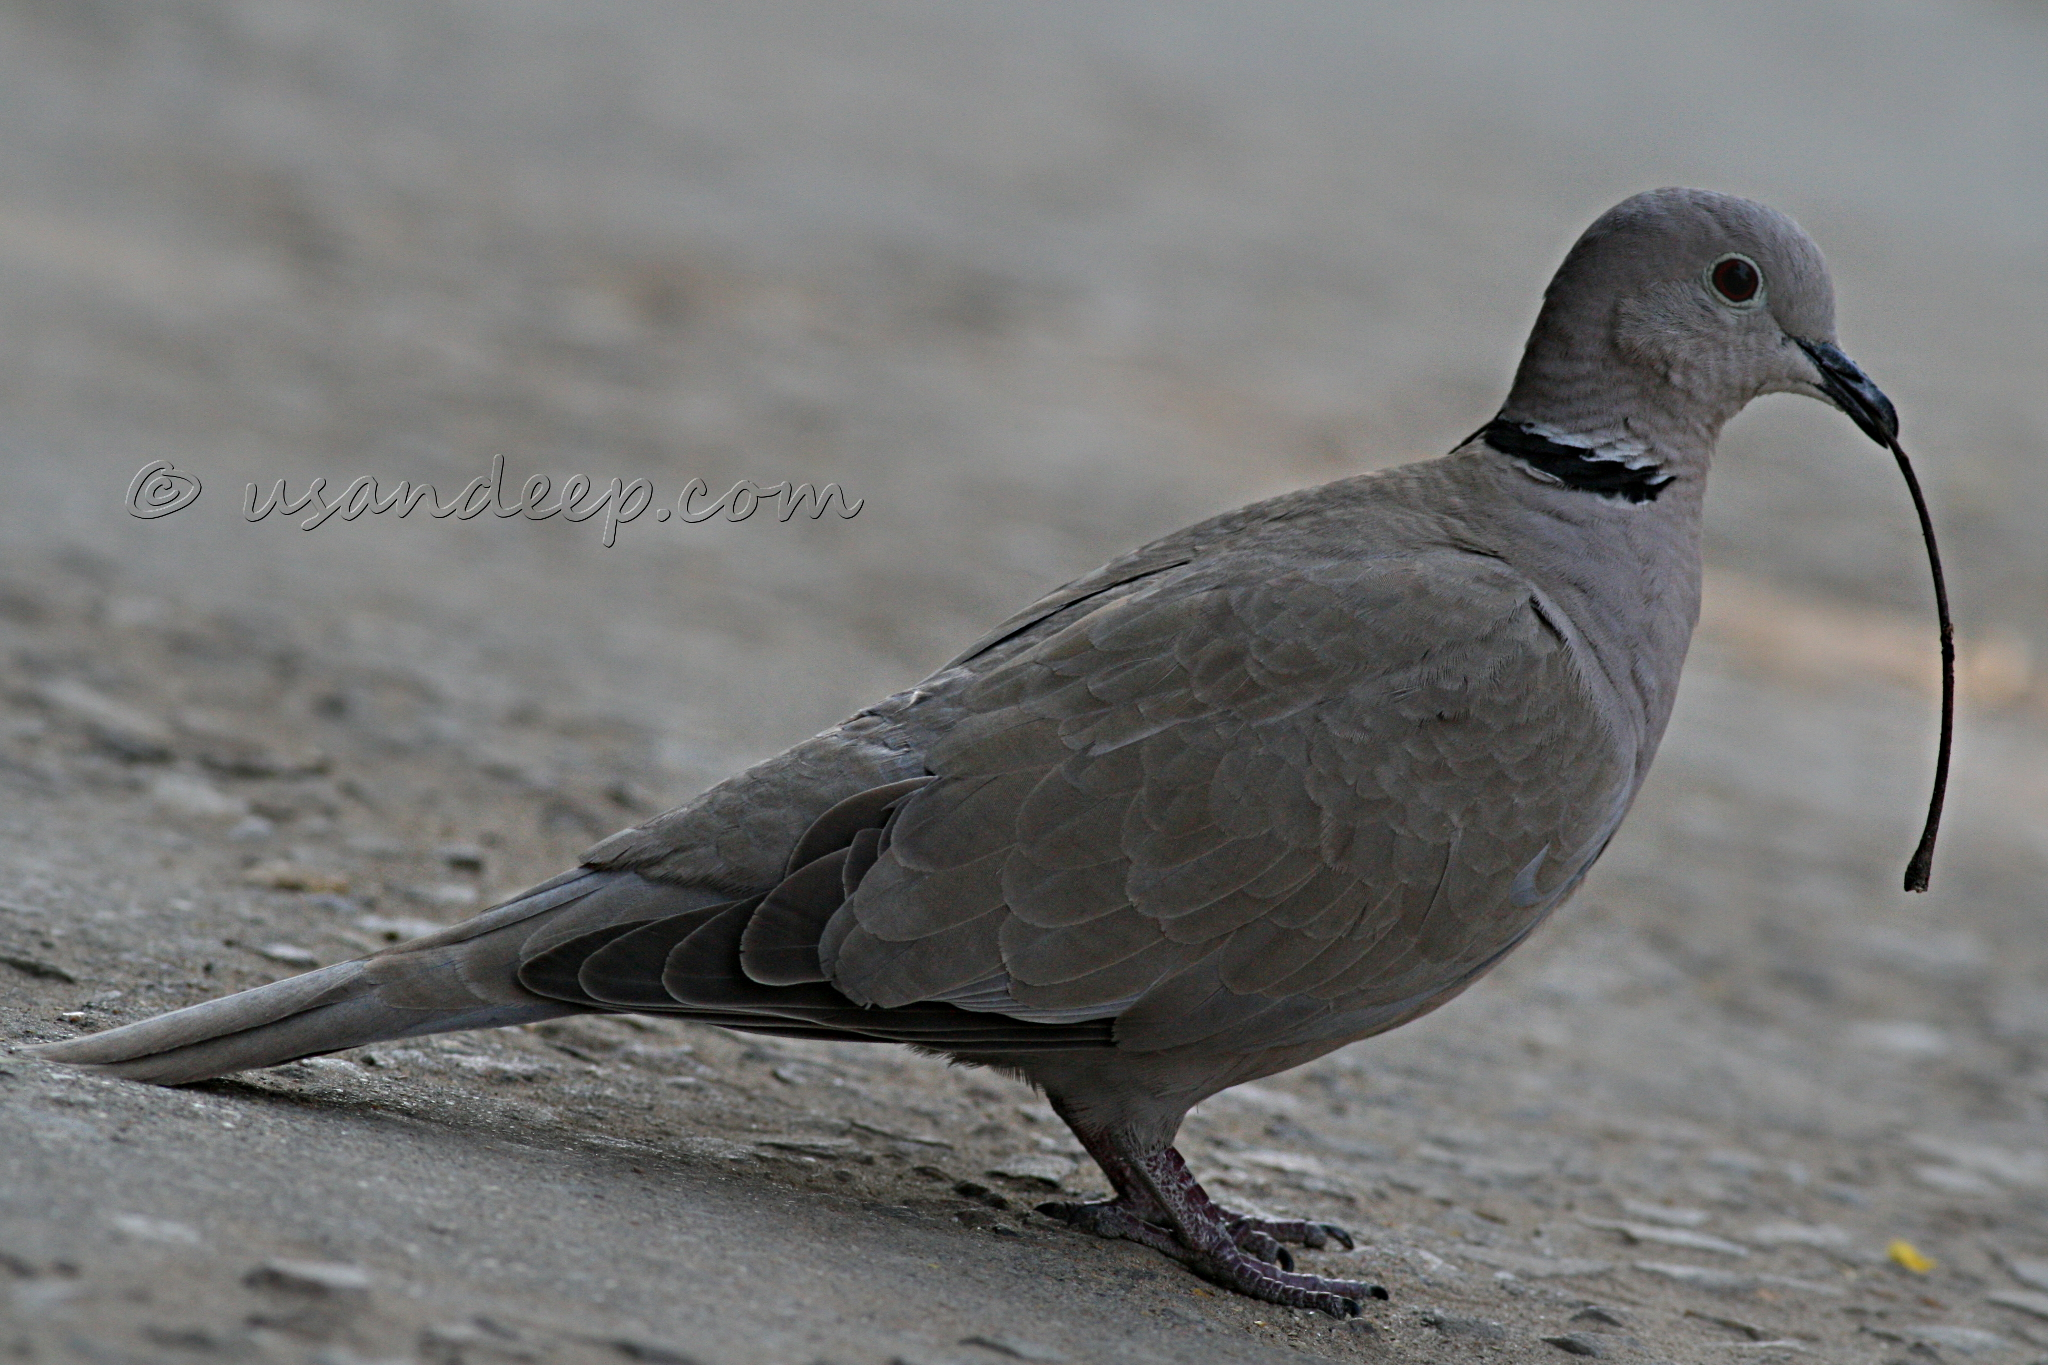 Eurasian Collared Dove at Jaipur